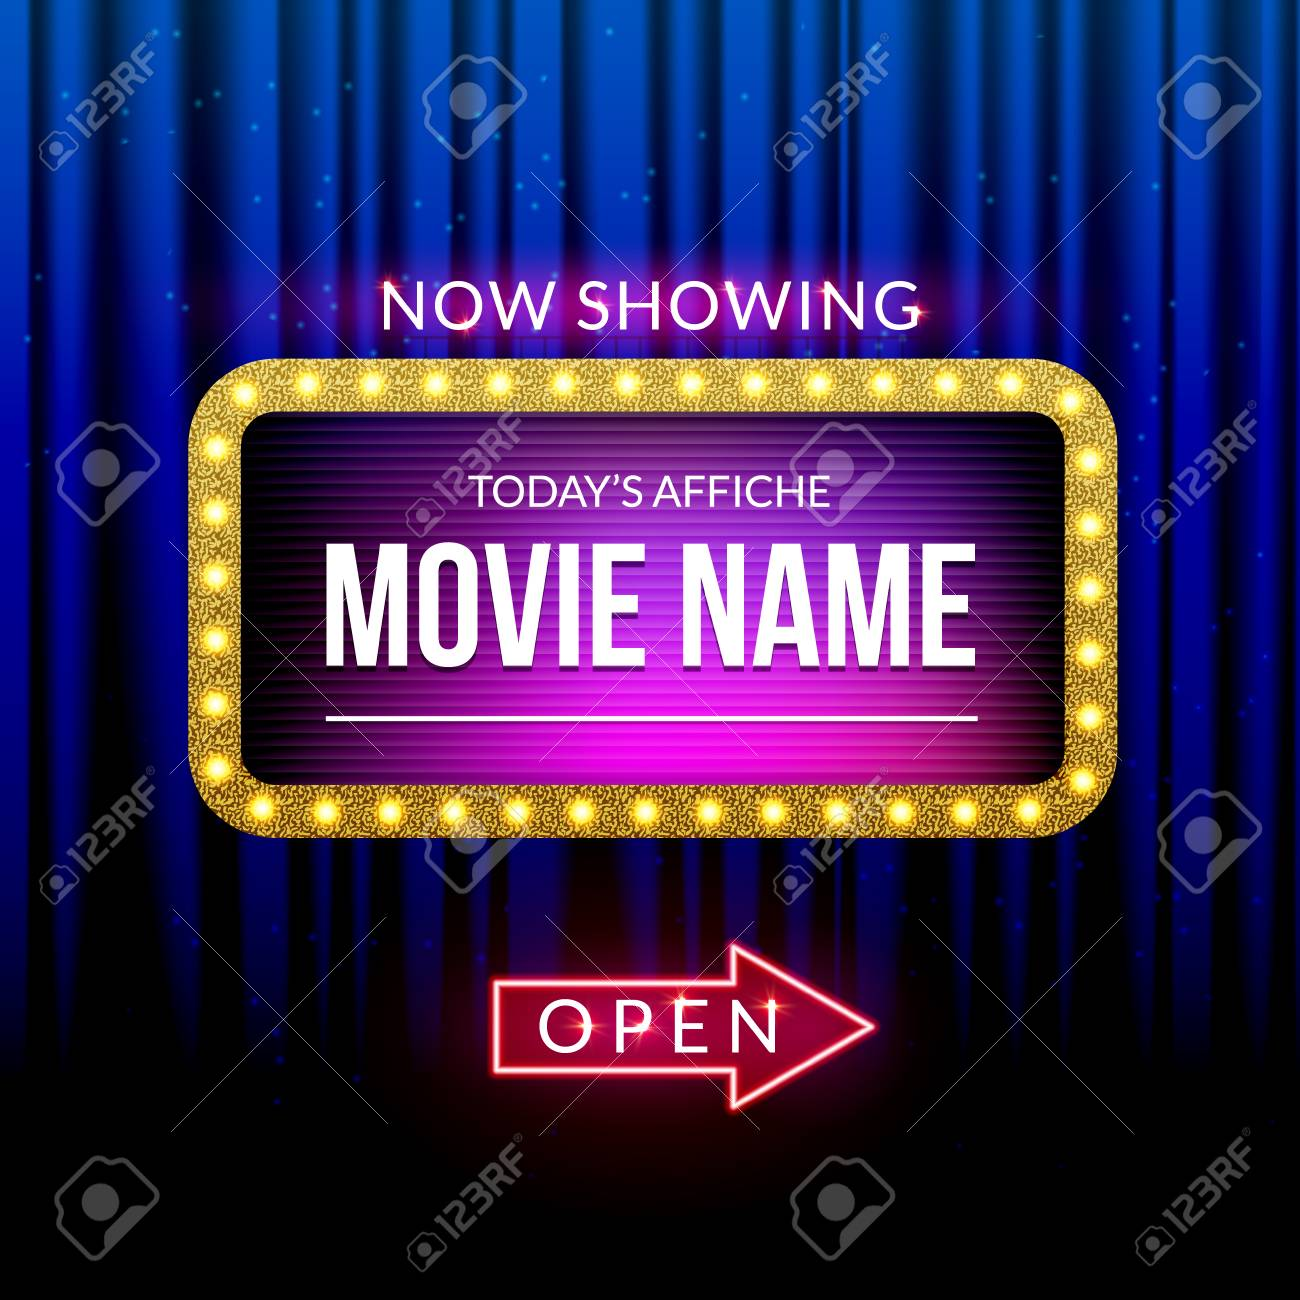 Cinema billboard now showing. Vector sign for theater with lights. Shiny banner decoration curtains. - 108189131